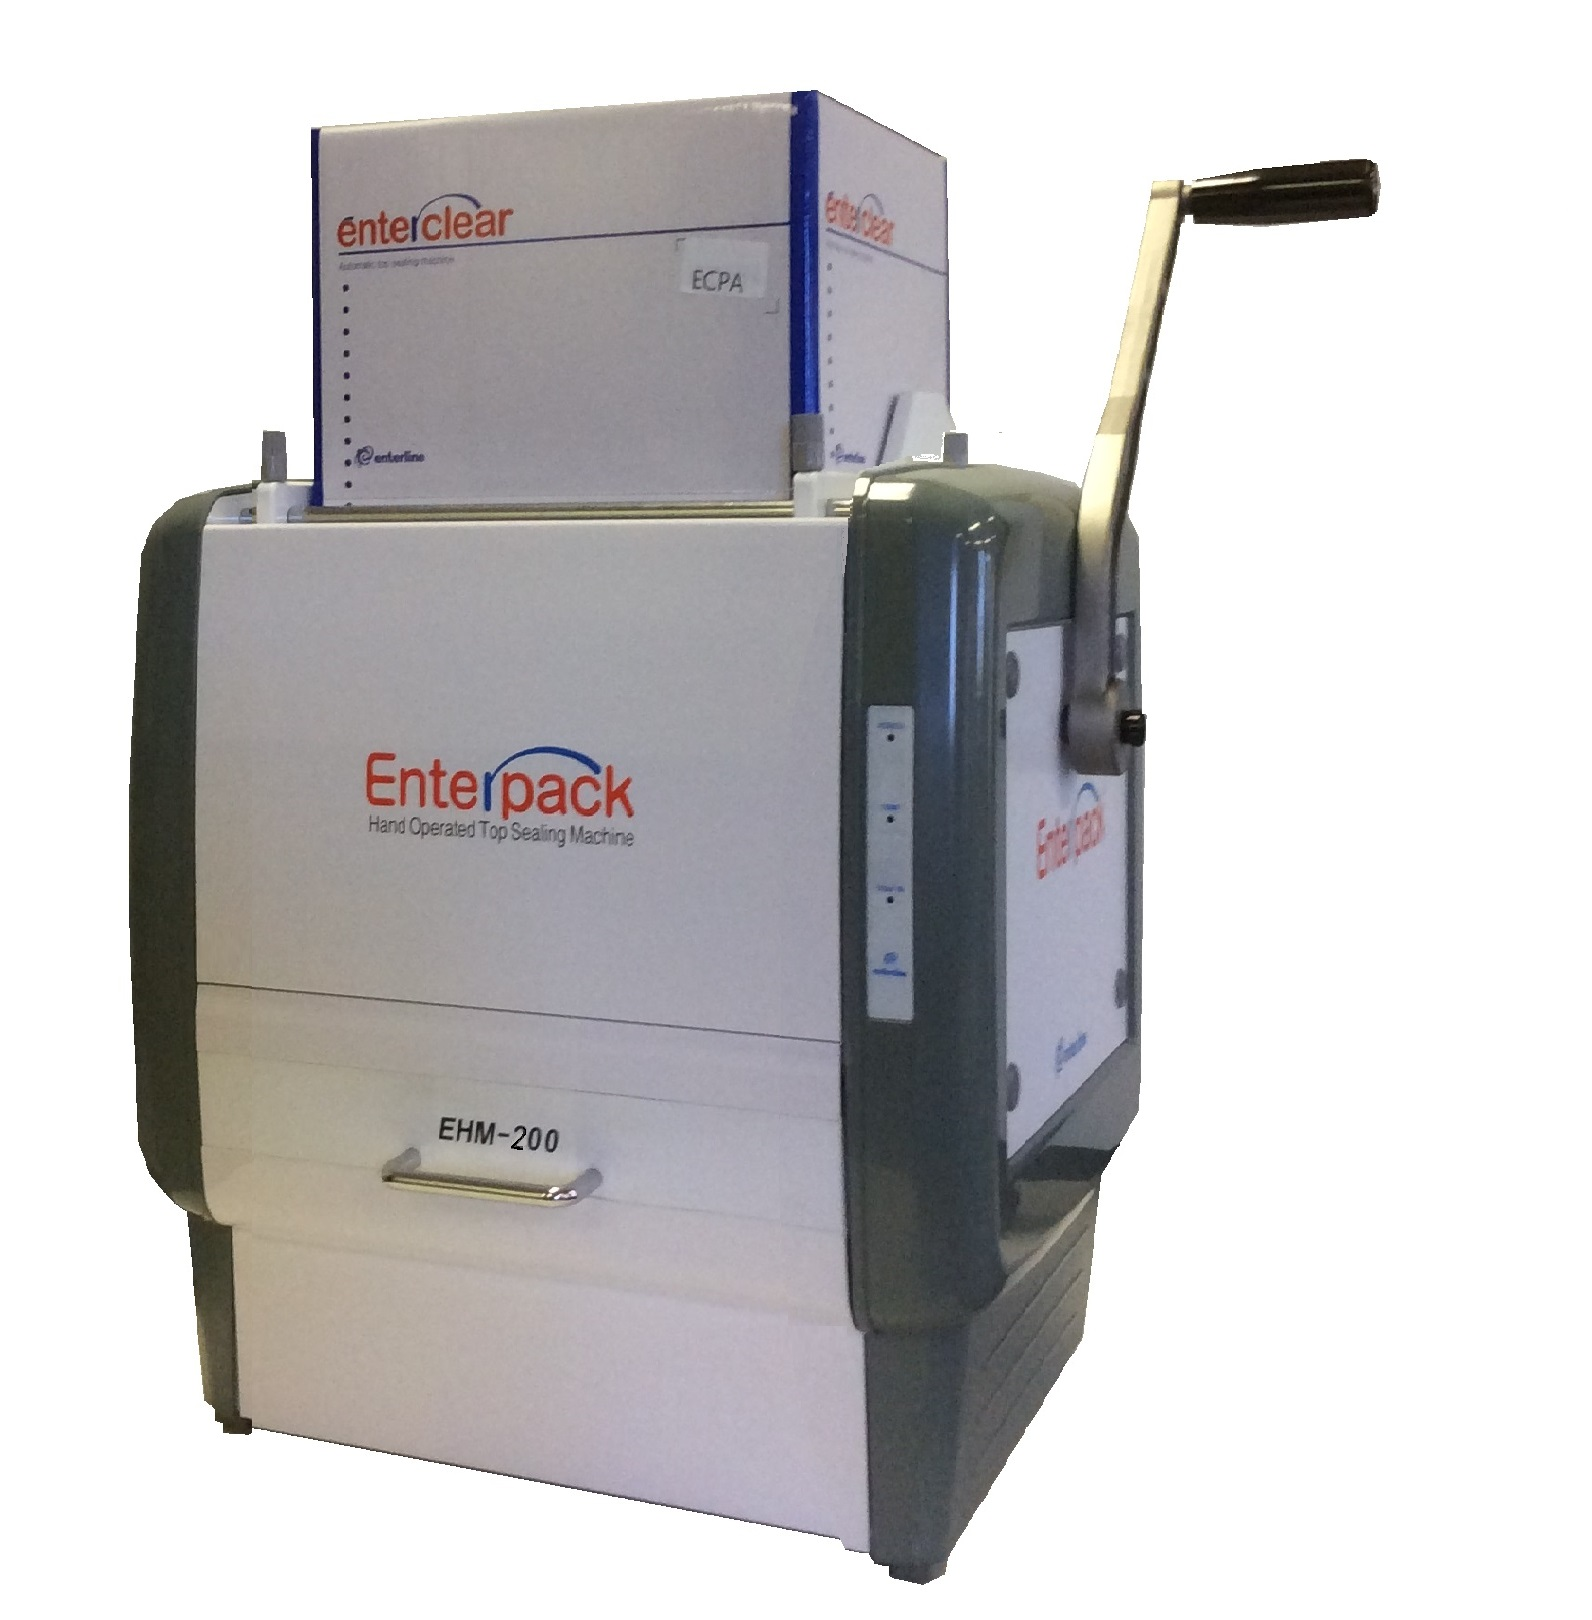 EHM 200 ENTERPACK MANUAL TRAY SEALING MACHINE